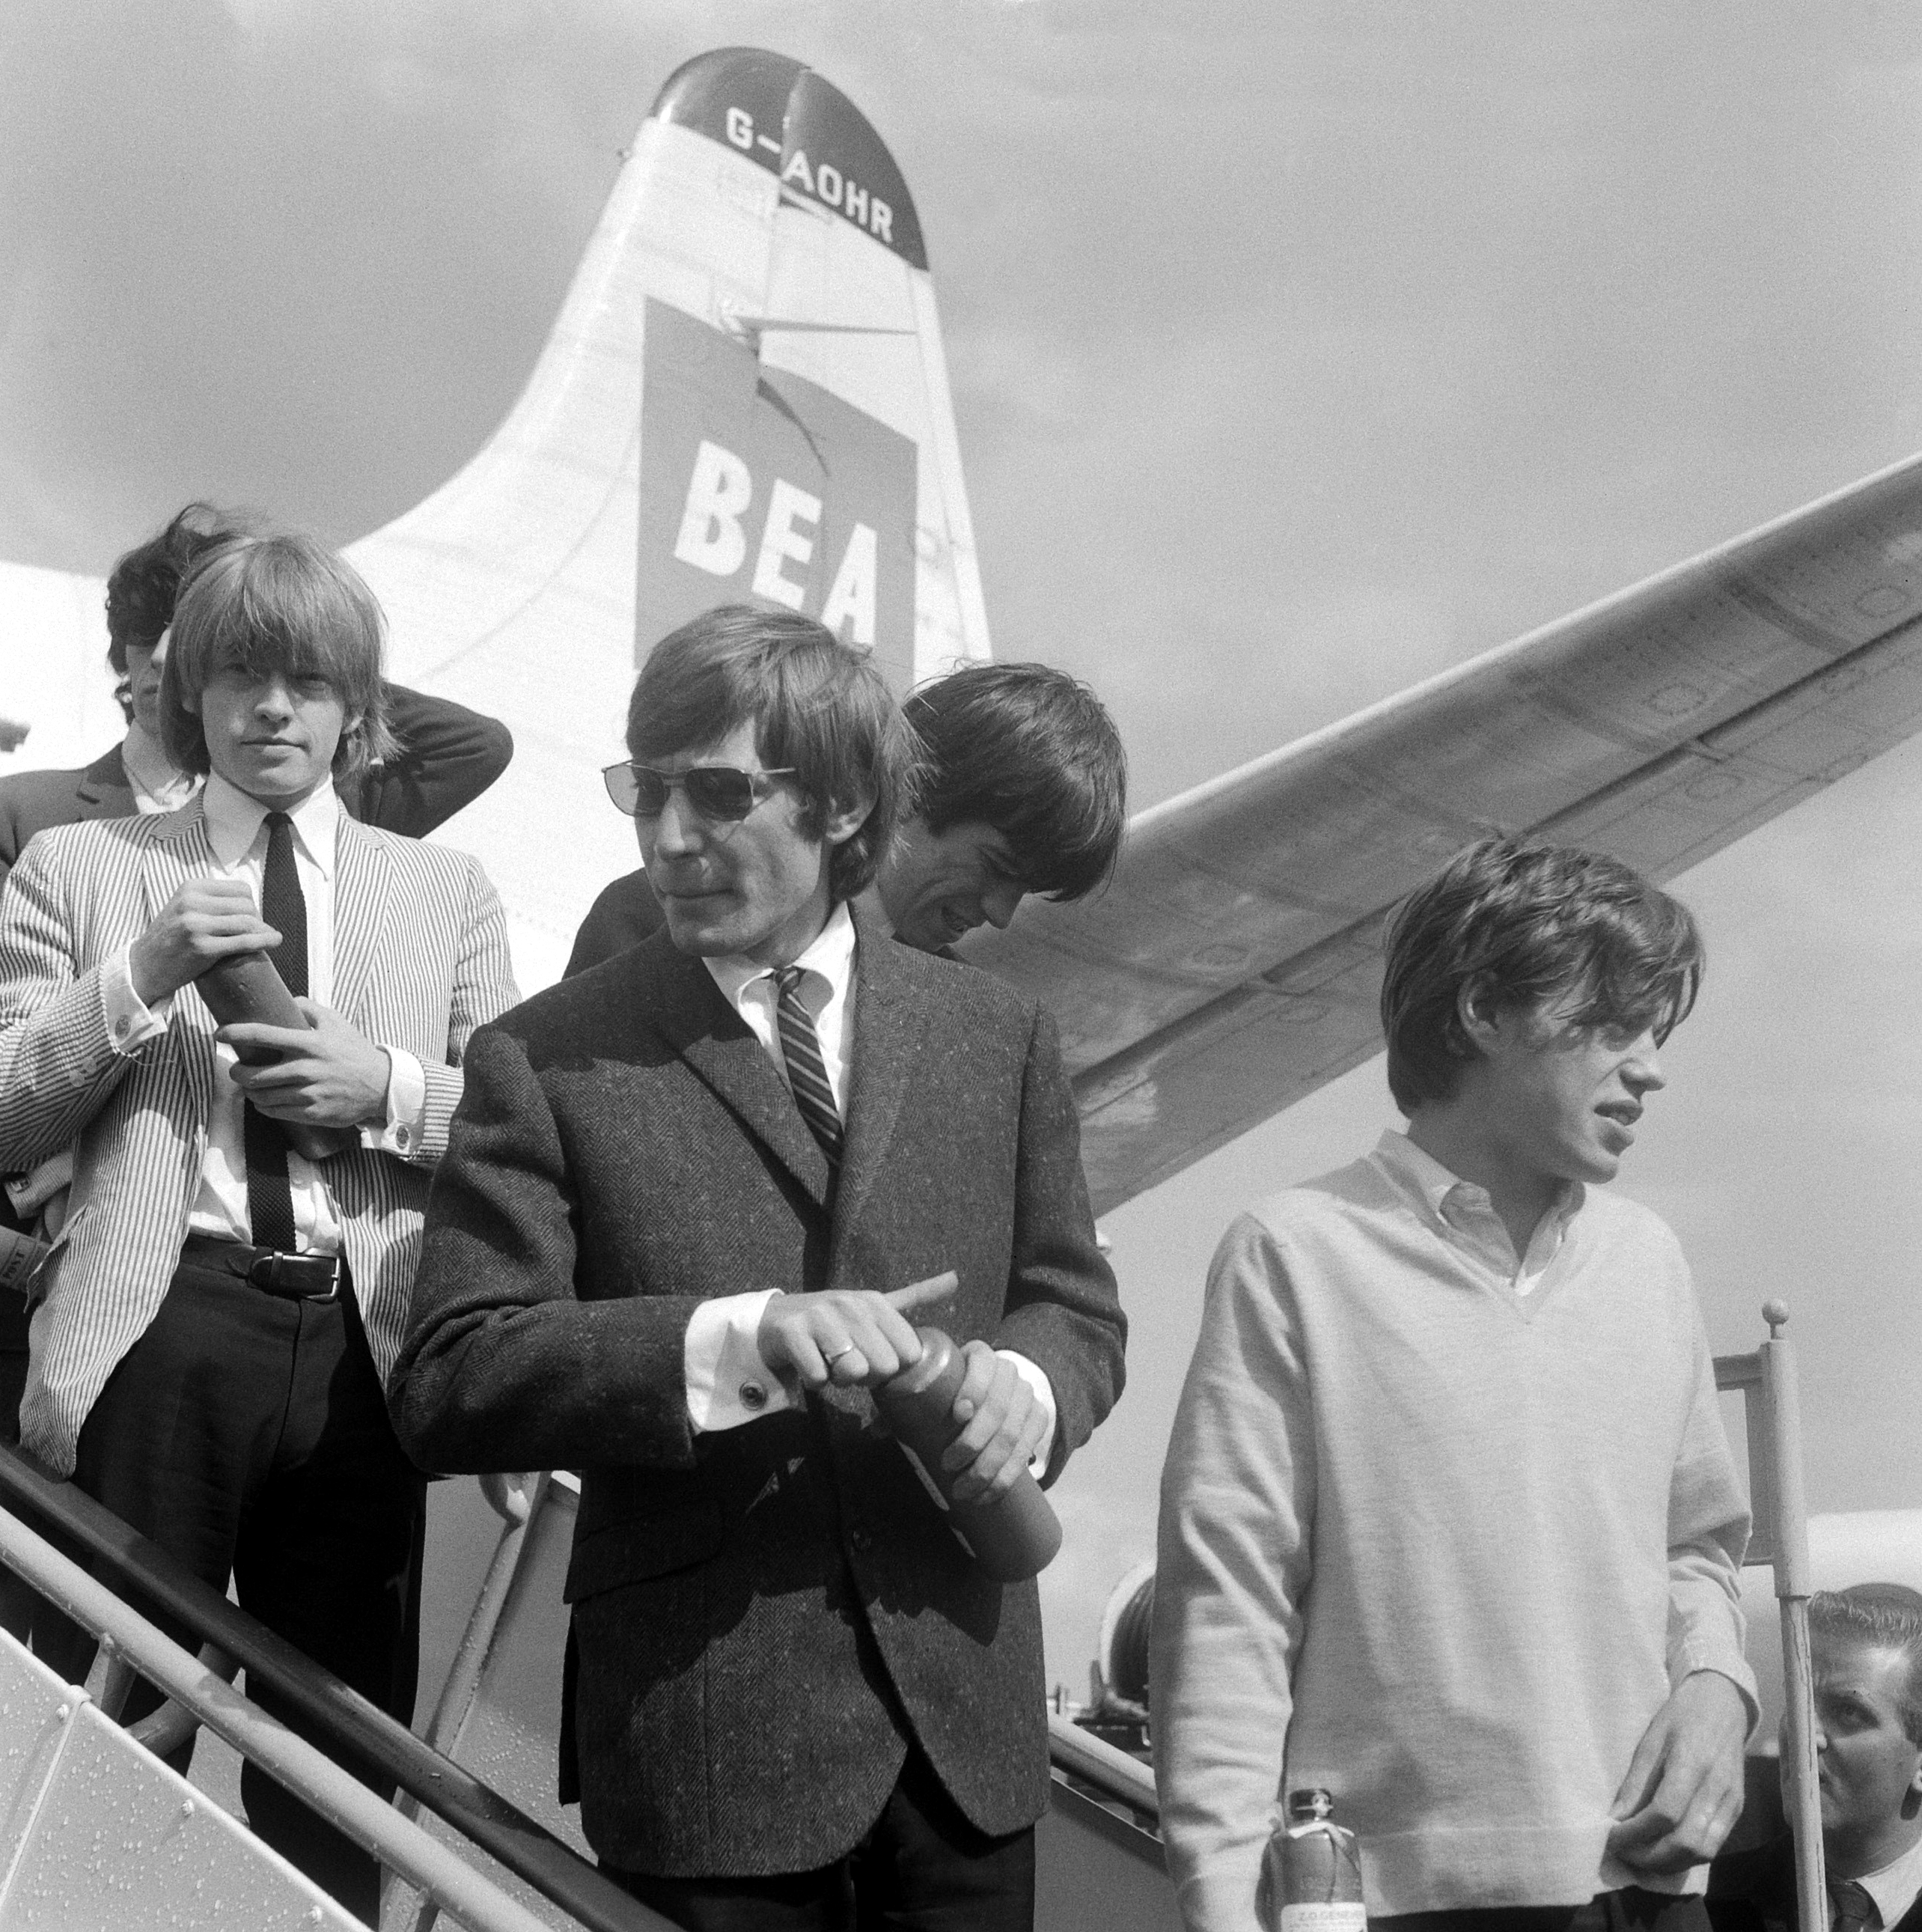 The Rolling Stones getting off an airplane at Airport Schiphol on August 8, 1964. This is a retouched (removed scratches and spots, adjusted colors) version of the image from the Nationaal Archief